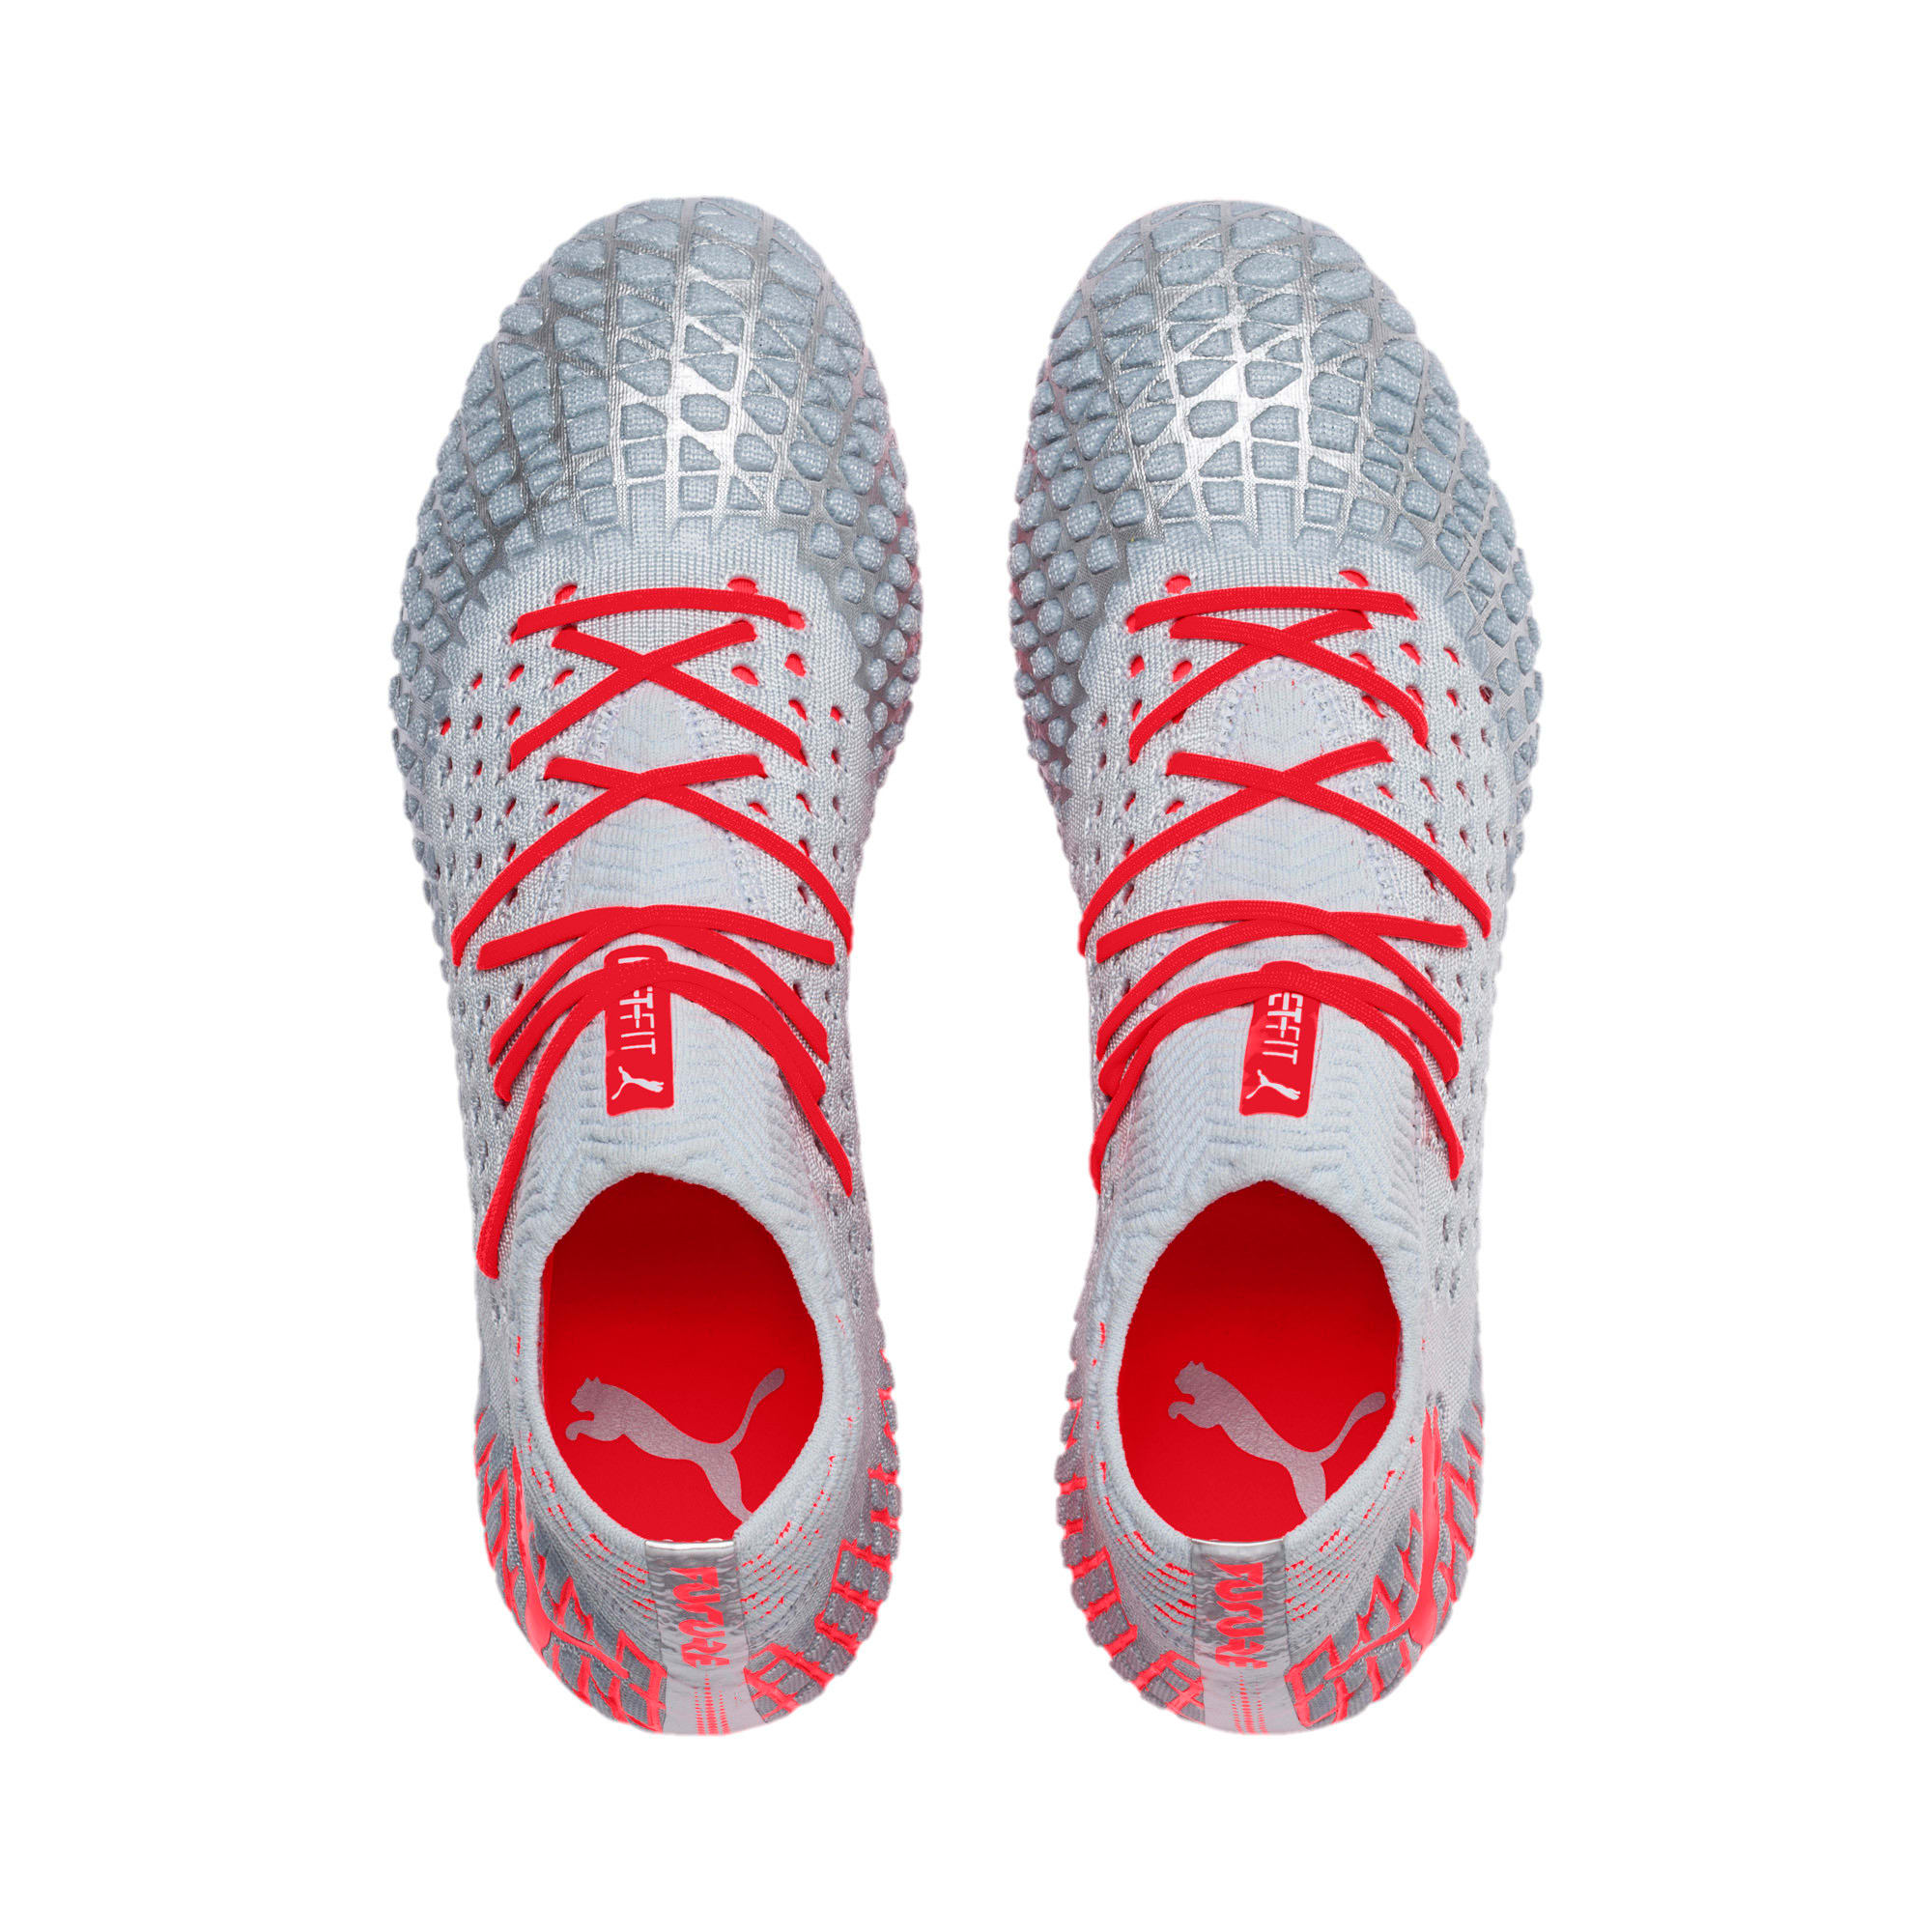 Thumbnail 7 of FUTURE 4.1 NETFIT FG/AG Men's Football Boots, Blue-Nrgy Red-High Risk Red, medium